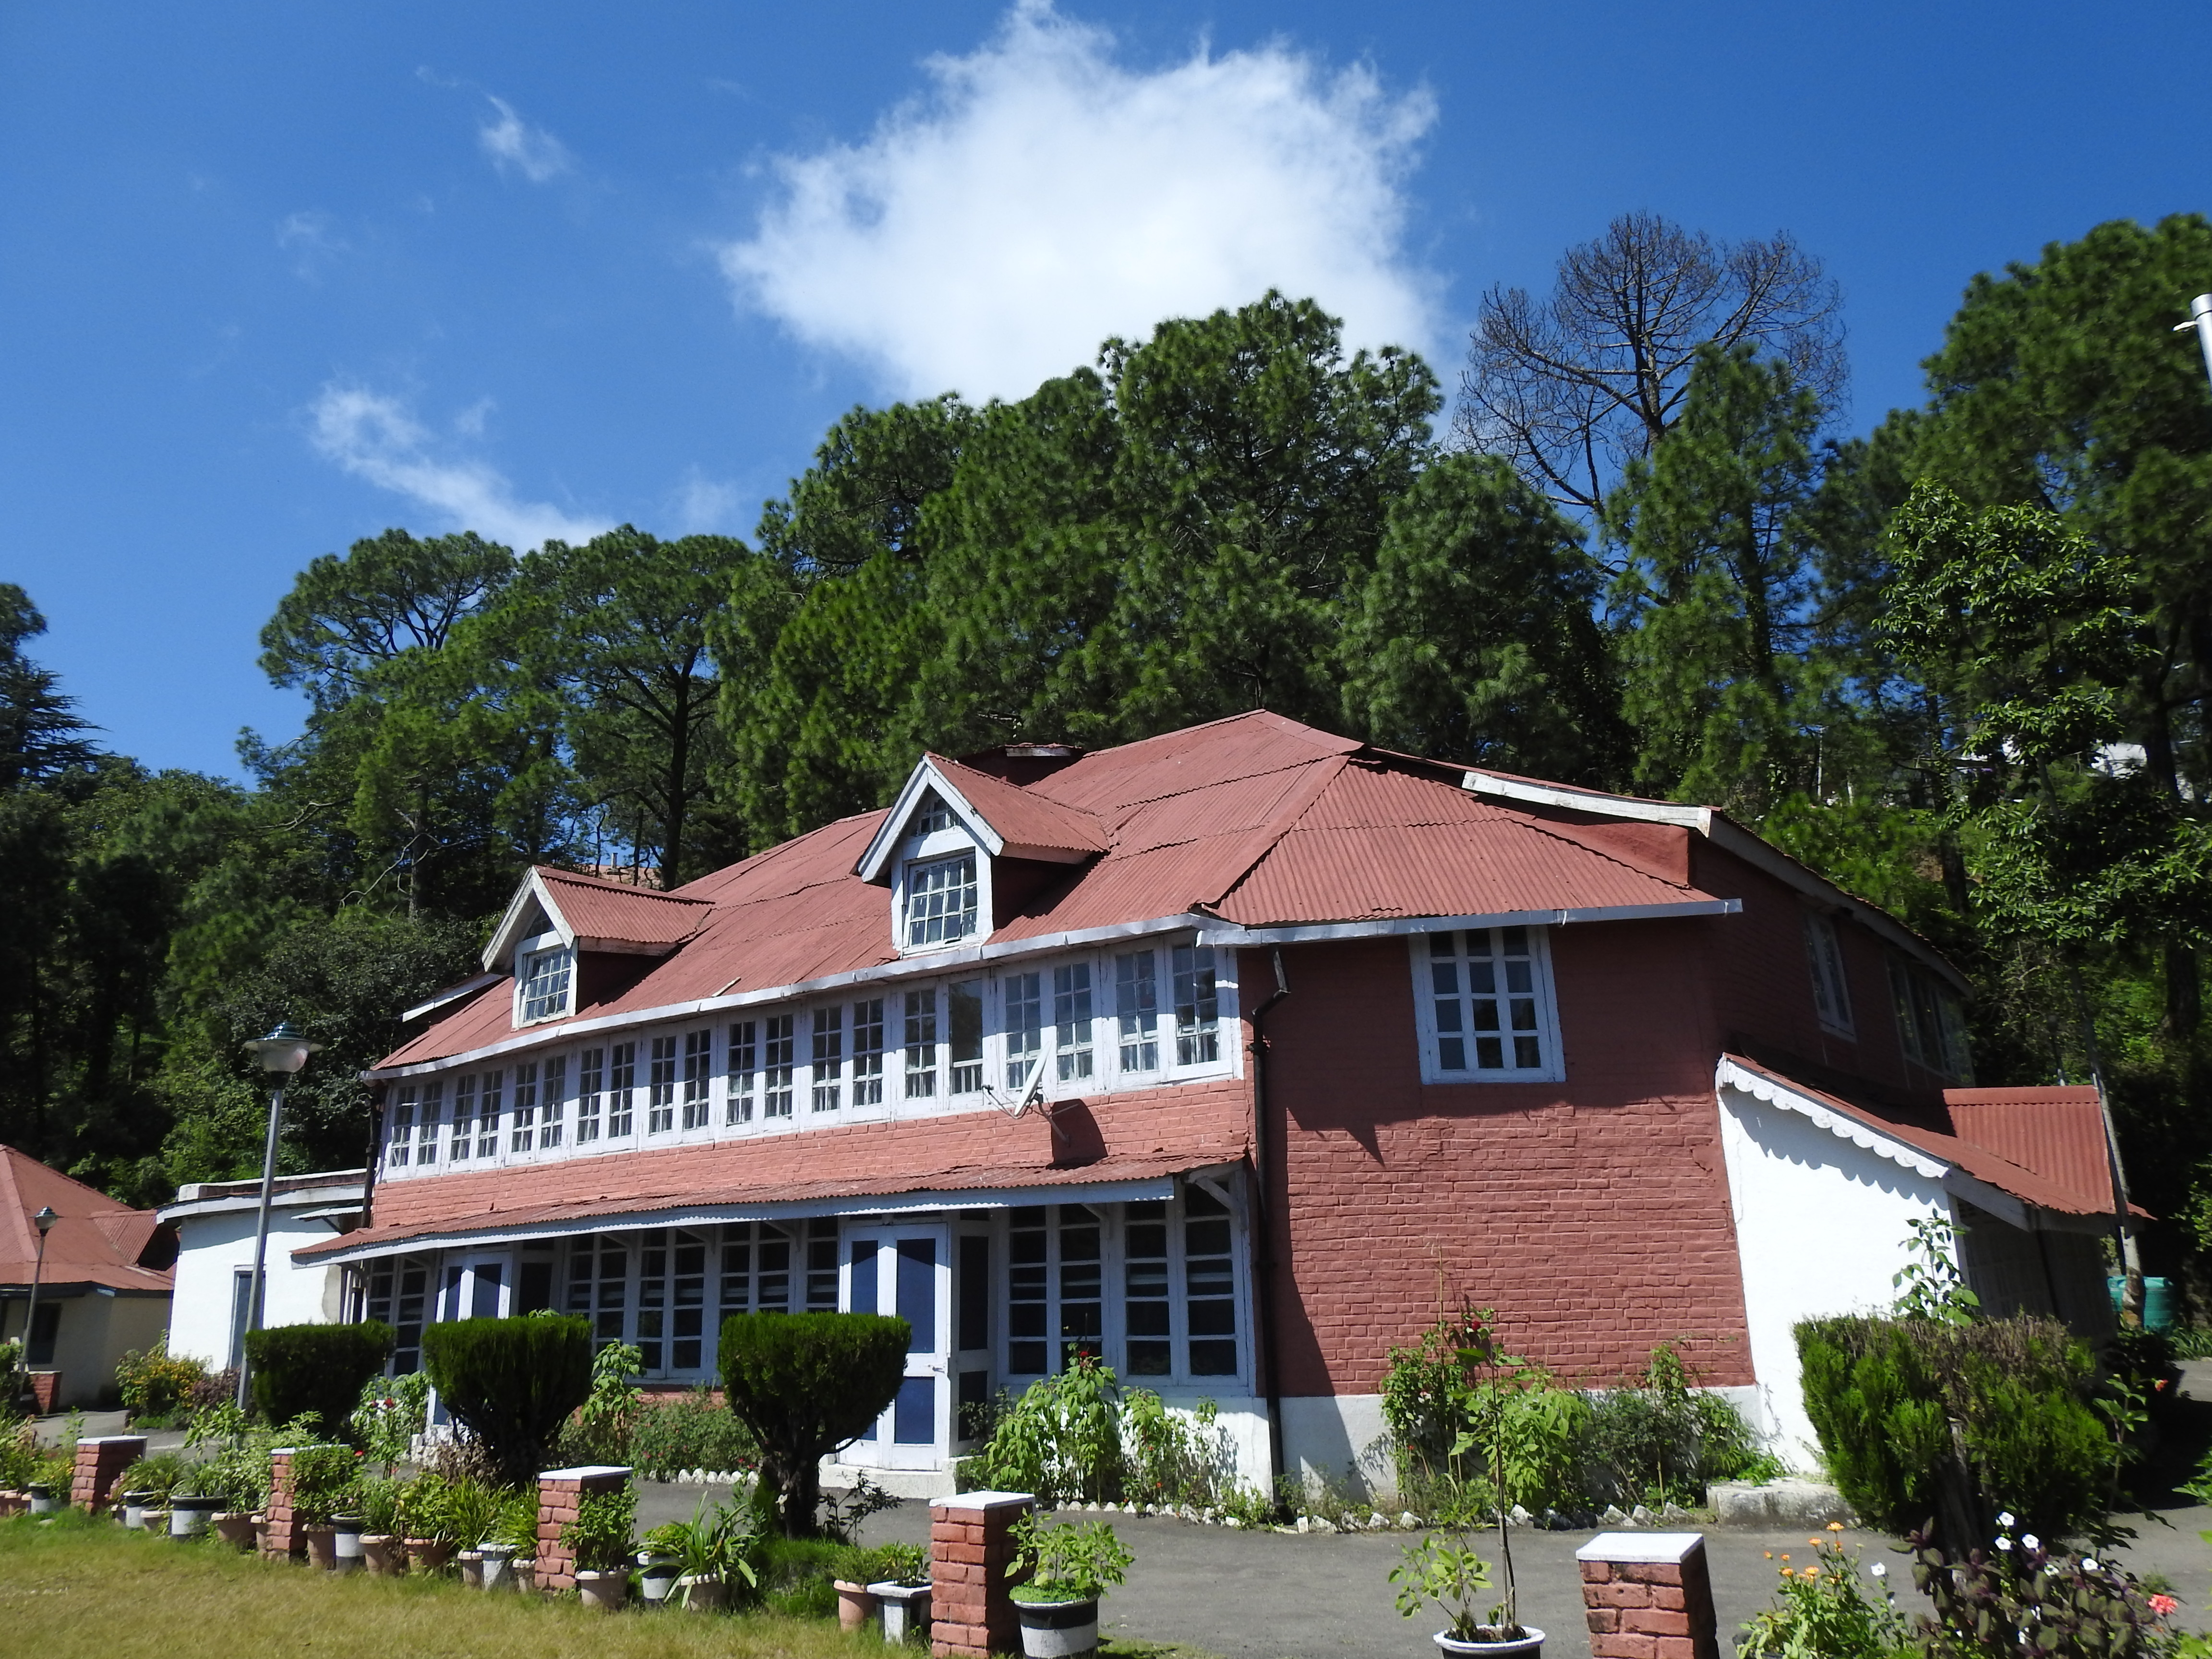 Kasauli Travel Guide 2020, How To Reach, Places To Visit & Much More! 2